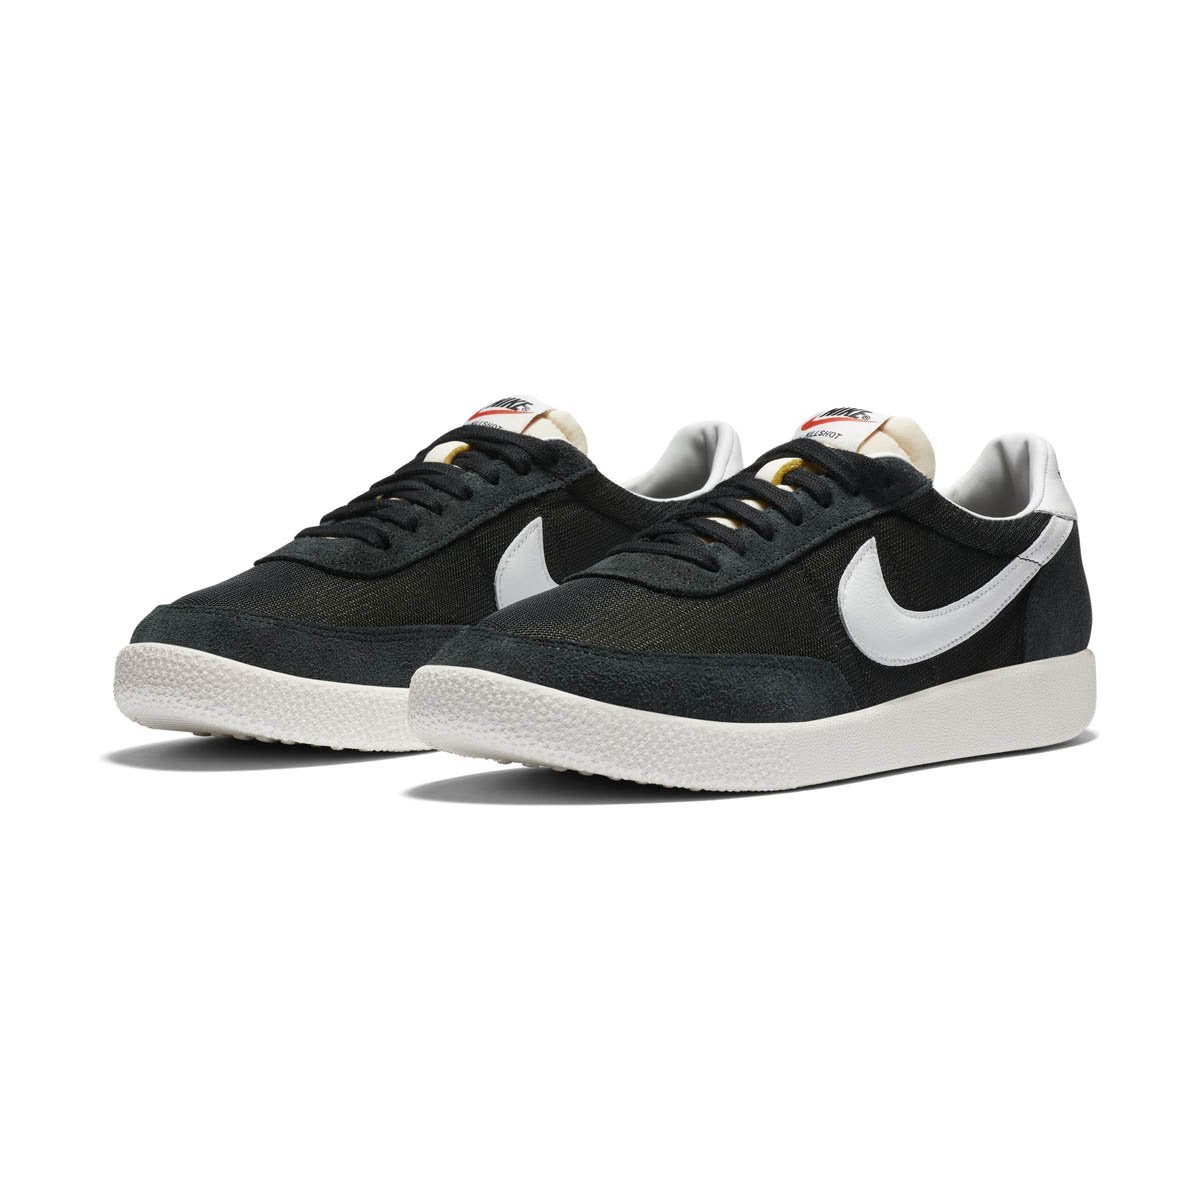 Men's Nike Killshot SP